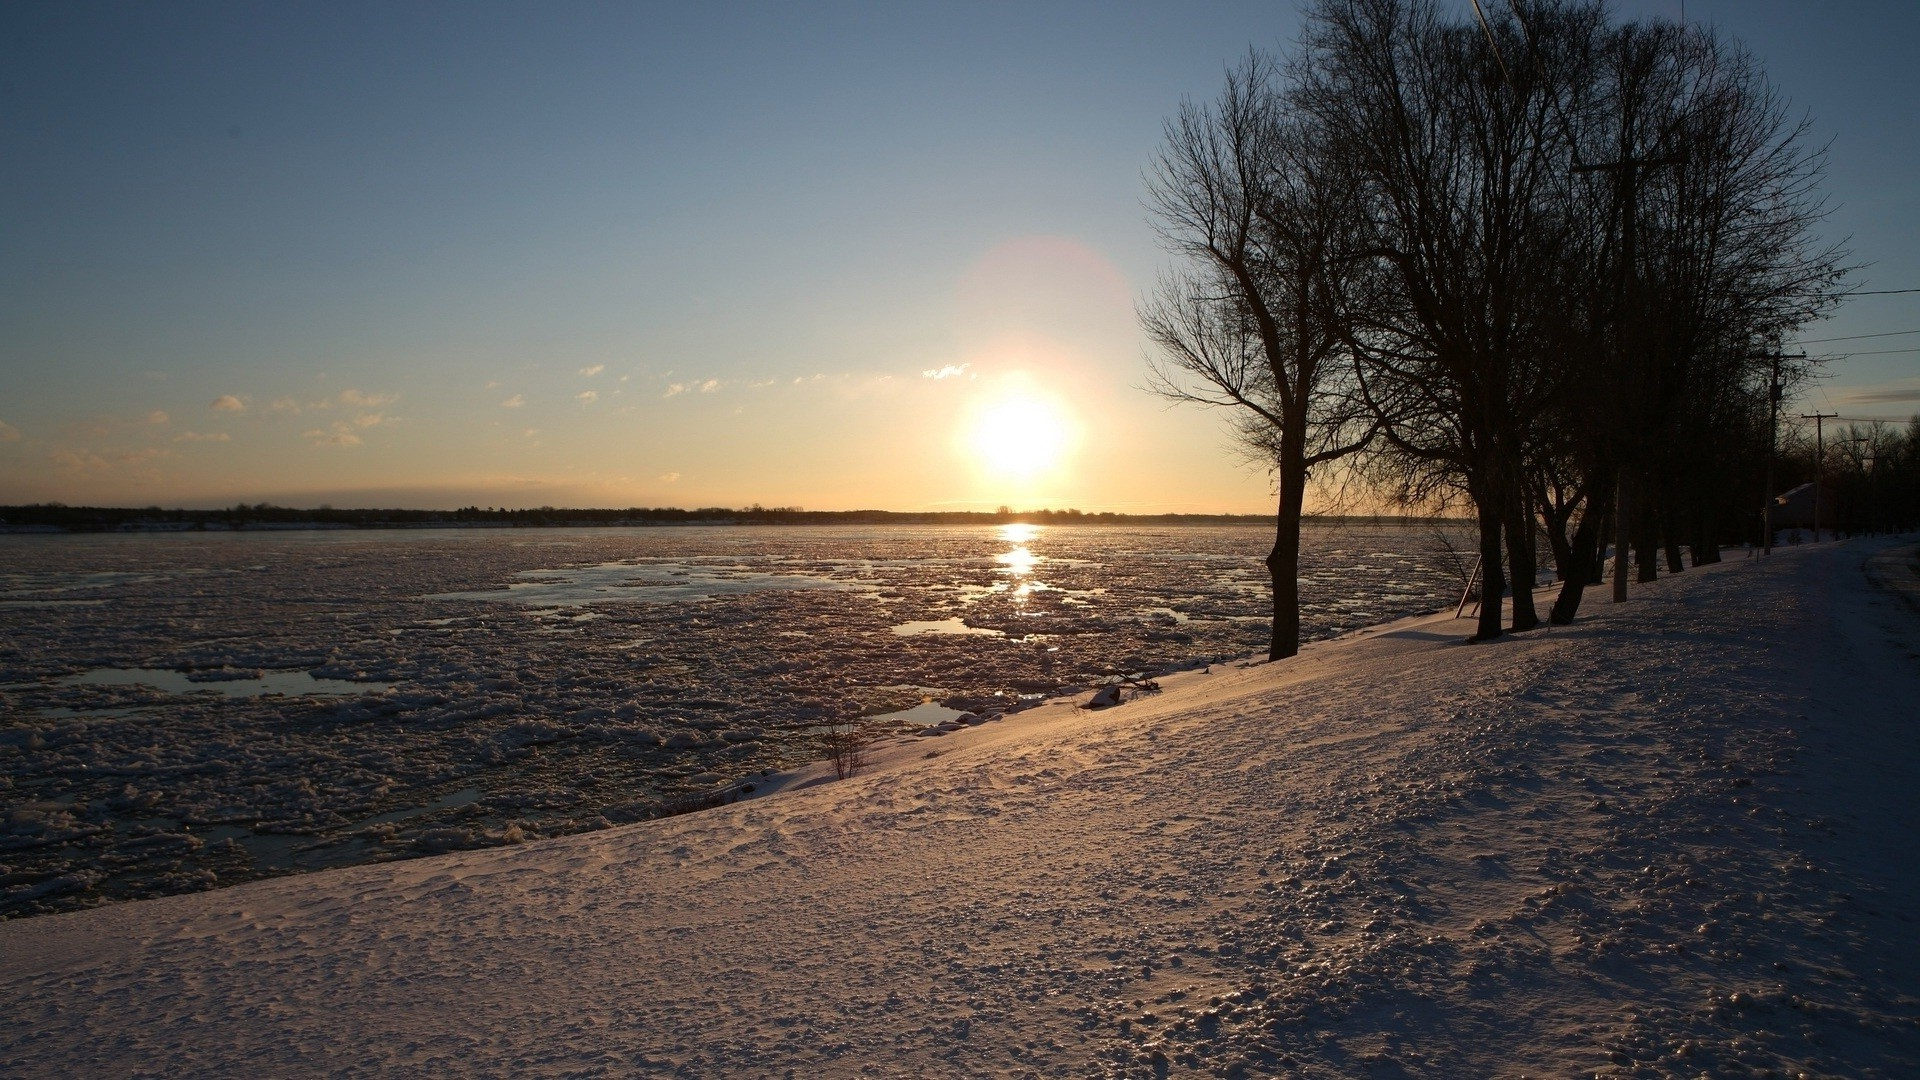 Sunset over the winter lake